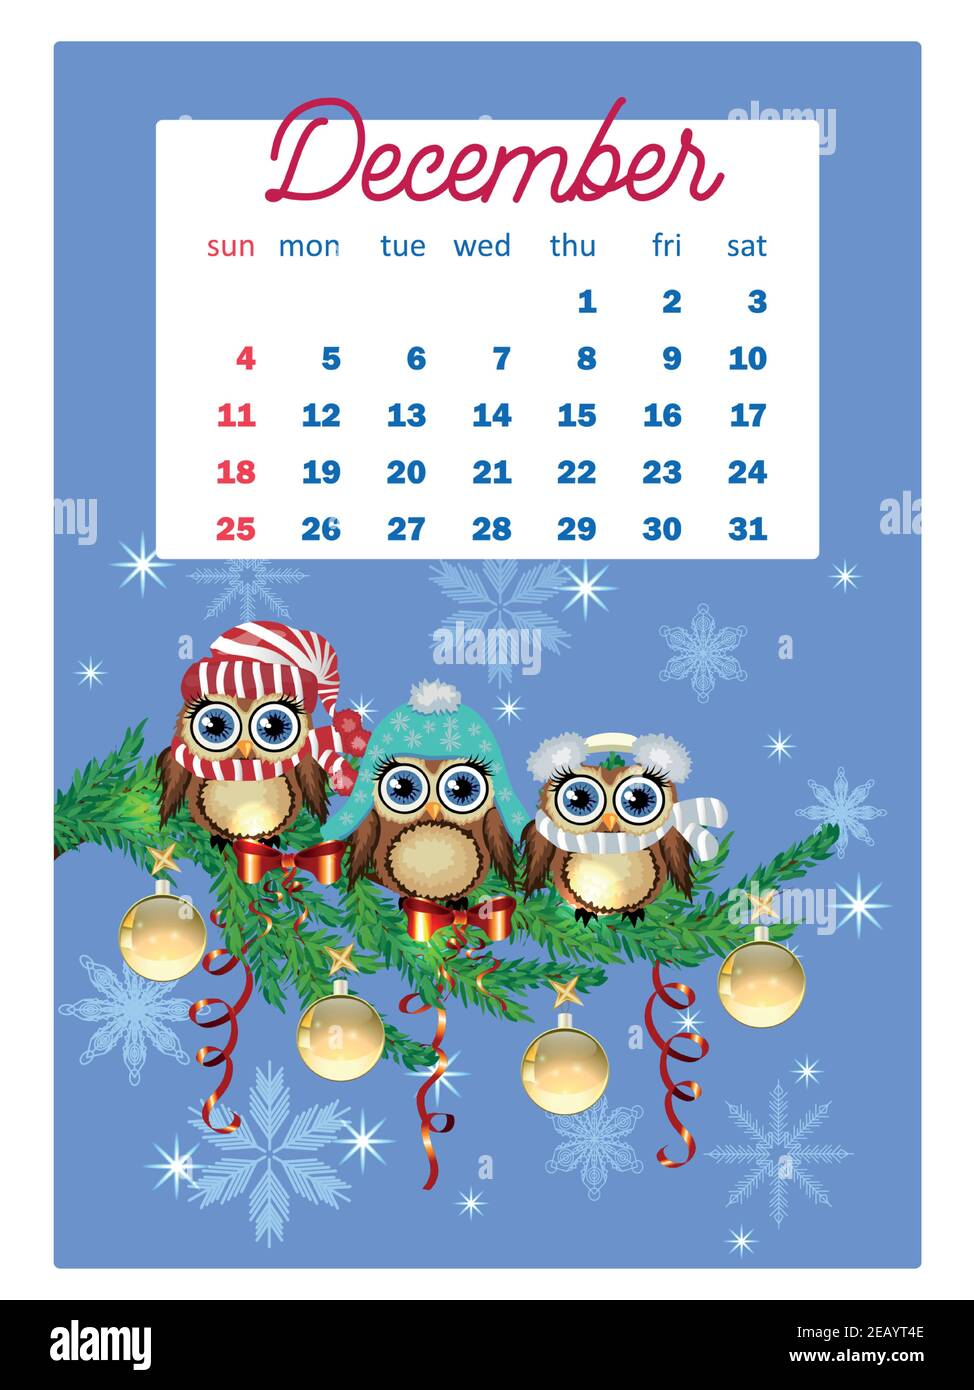 Cute Calendar 2022.Calendar 2022 Cute Calendar With Funny Cartoon Owls Cute Owls And Birds For Every Month Wall Vertical Calendar For 2022 The Week Starts On Sunday Stock Vector Image Art Alamy